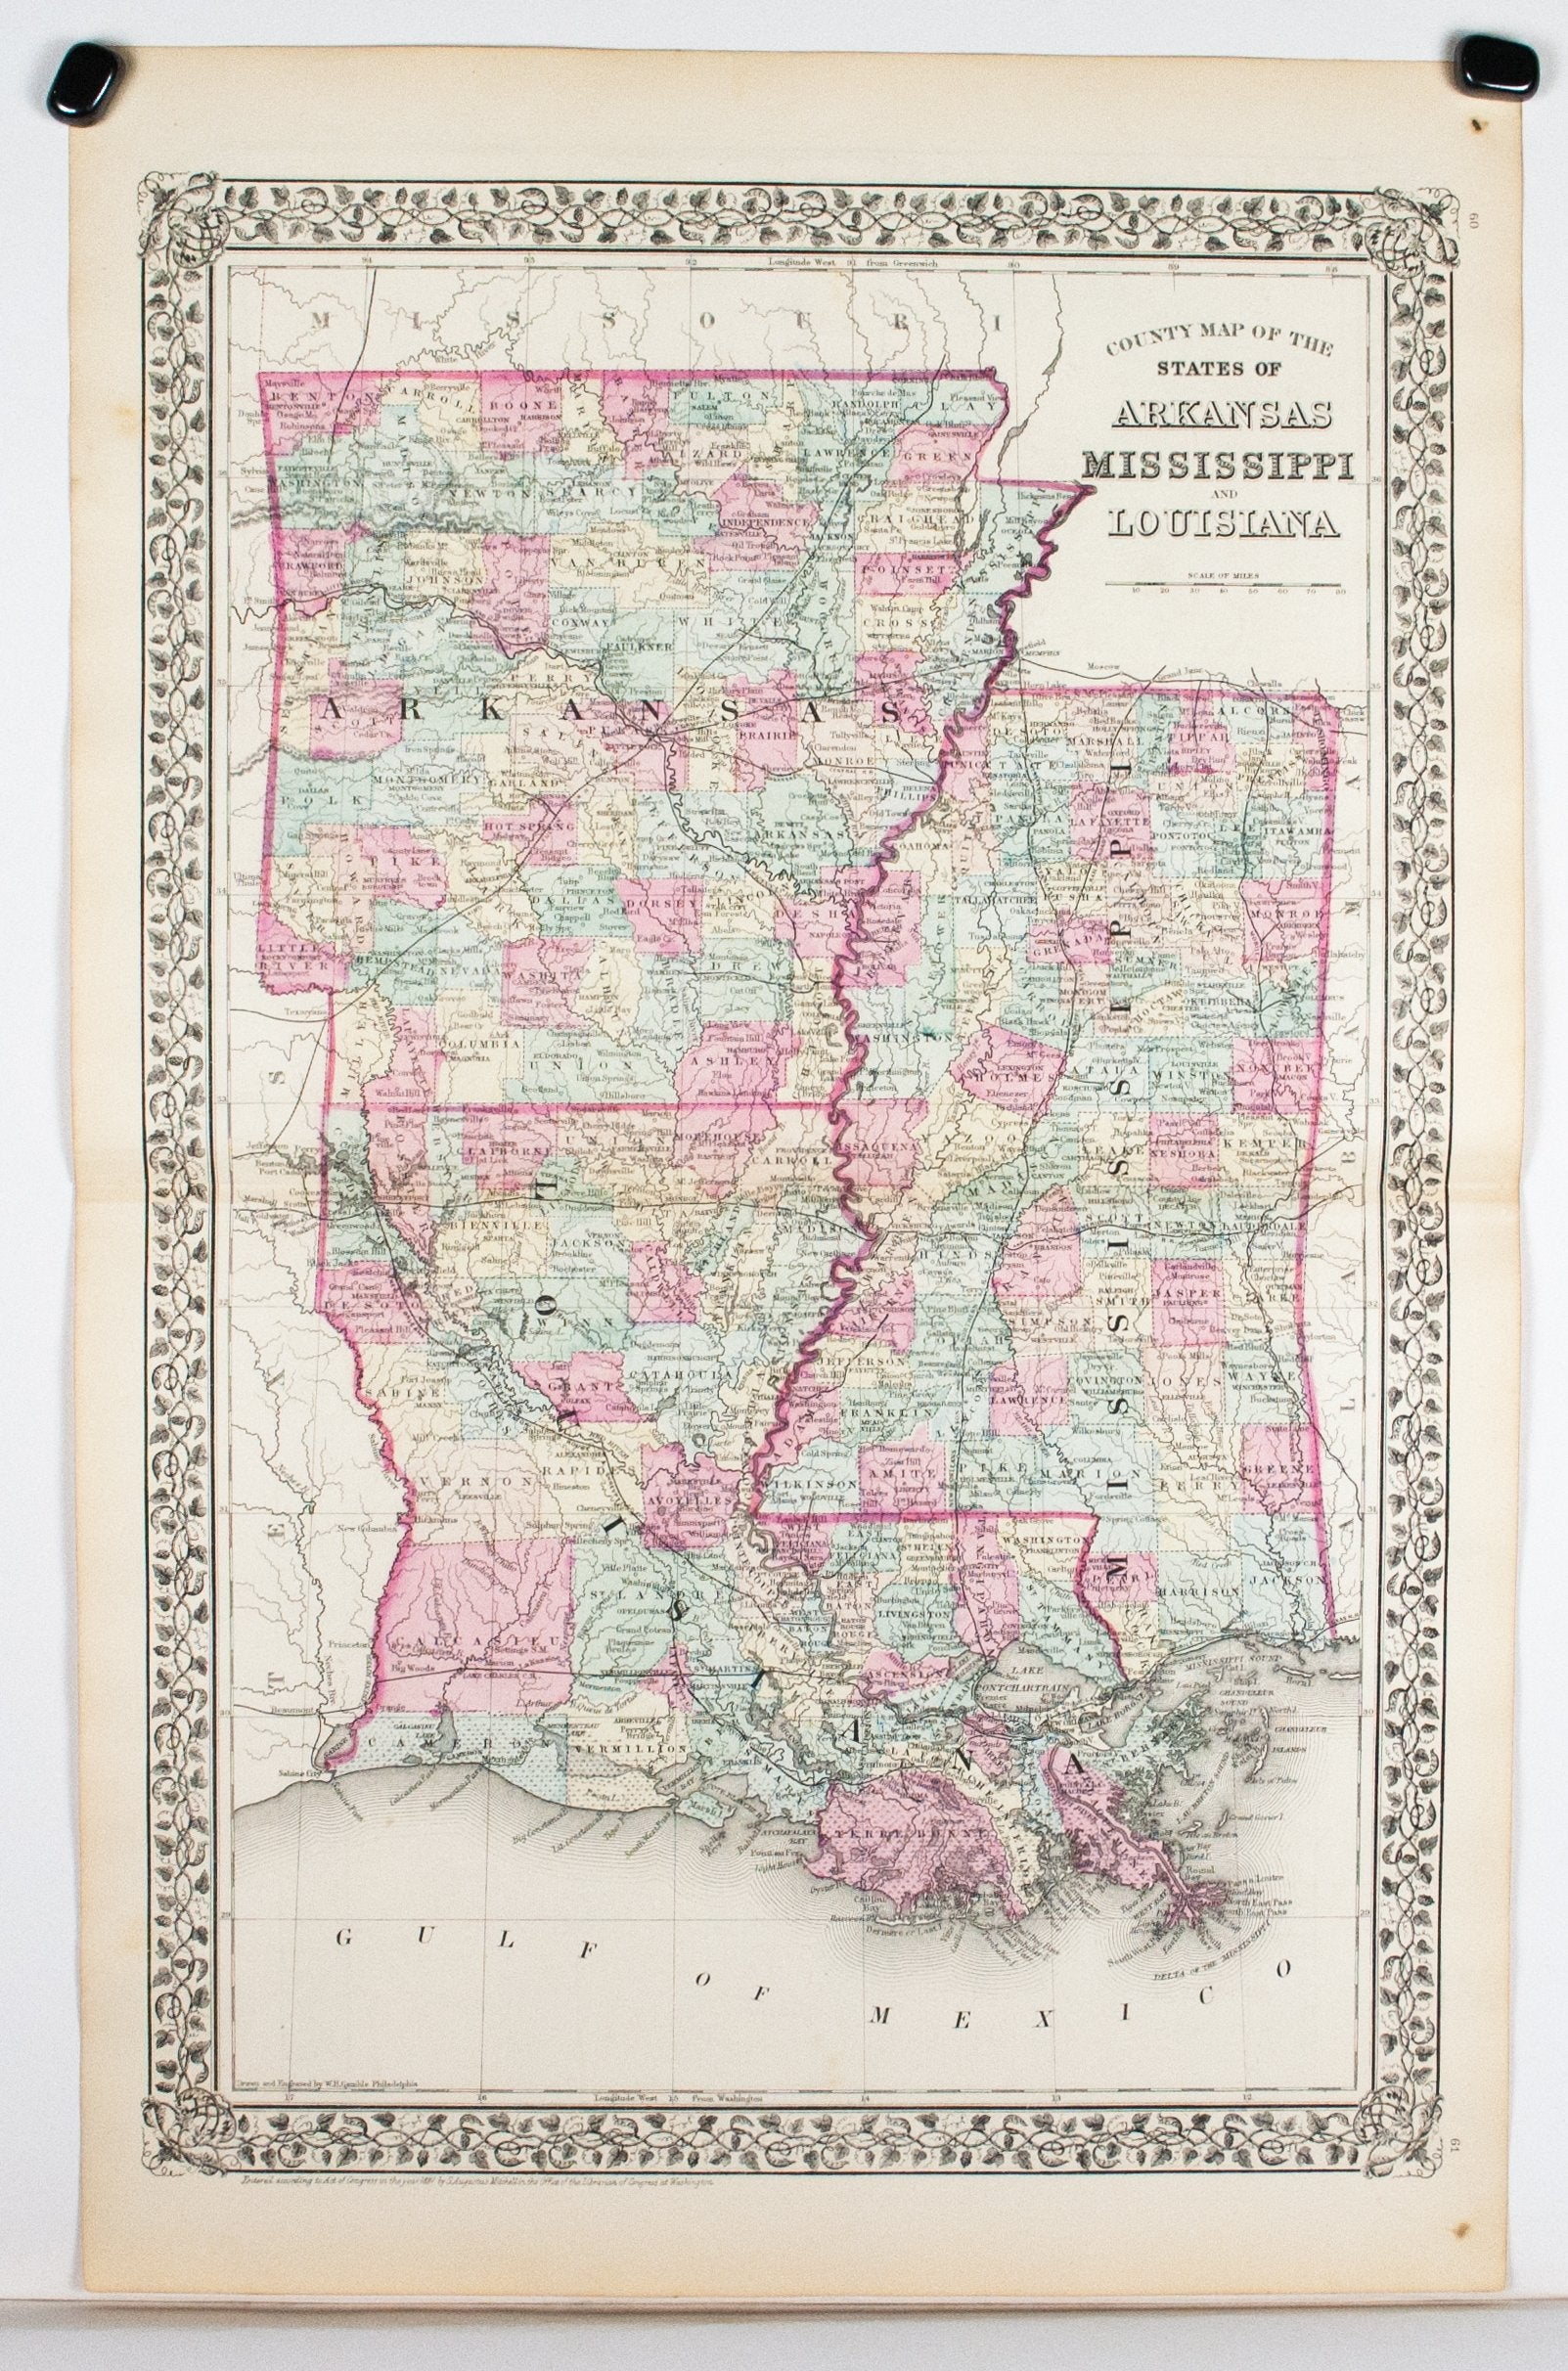 1881 County Map of the States of Arkansas, Mississippi and Louisiana on louisiana's map, maryland's map, kentucky's map, maine's map, oklahoma's map, mississippi regions map, ms road map, georgia's map, michigan's map, indiana's map, missouri's map, new mexico's map, mississippi county map, mississippi state map, new jersey's map,